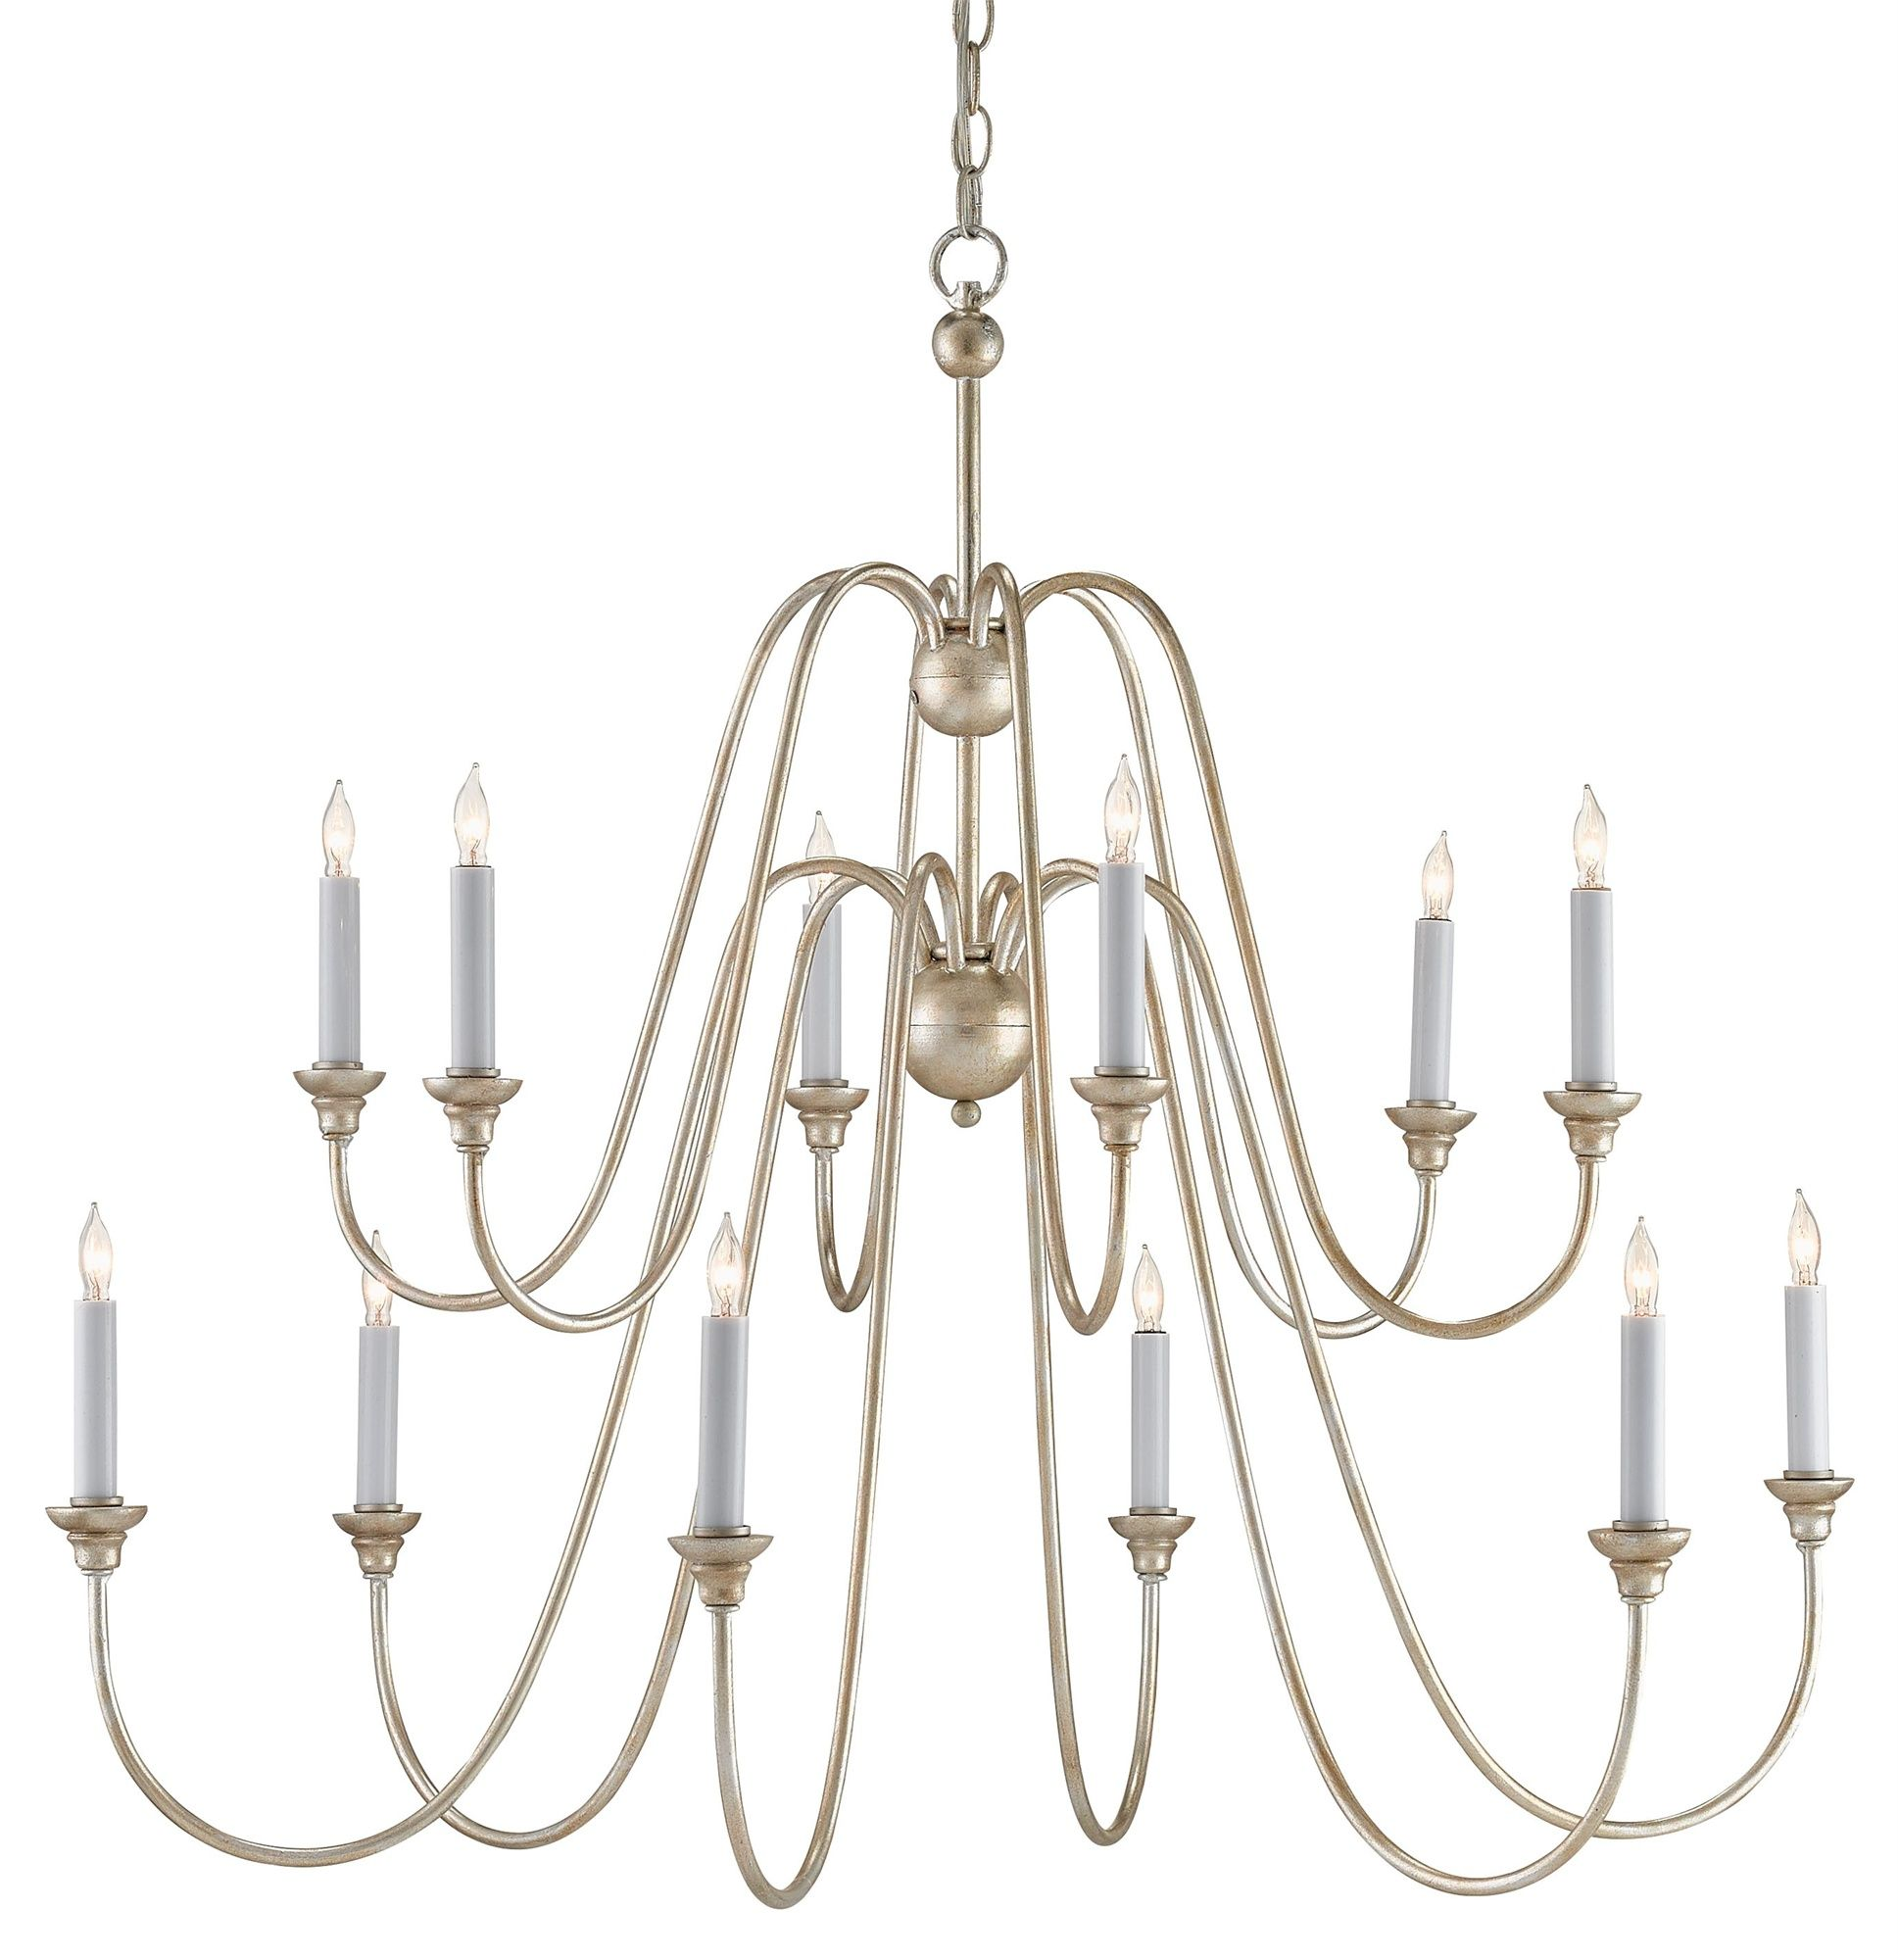 Currey Company 9289 Orion Chandelier In Silver Leaf